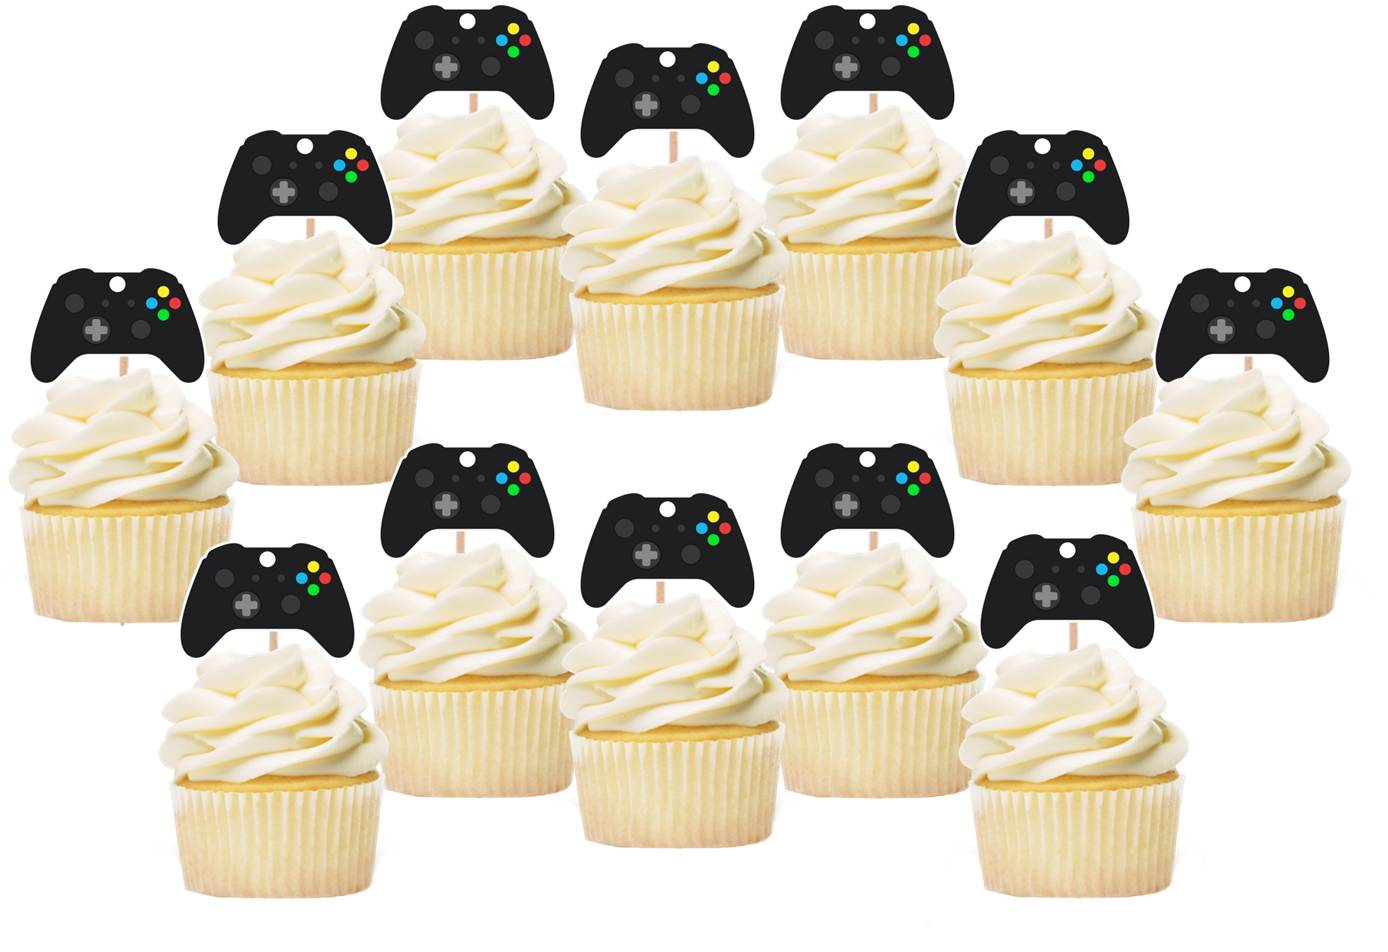 Video Game Control Cupcake Toppers, Gamer Toppers, Handmade